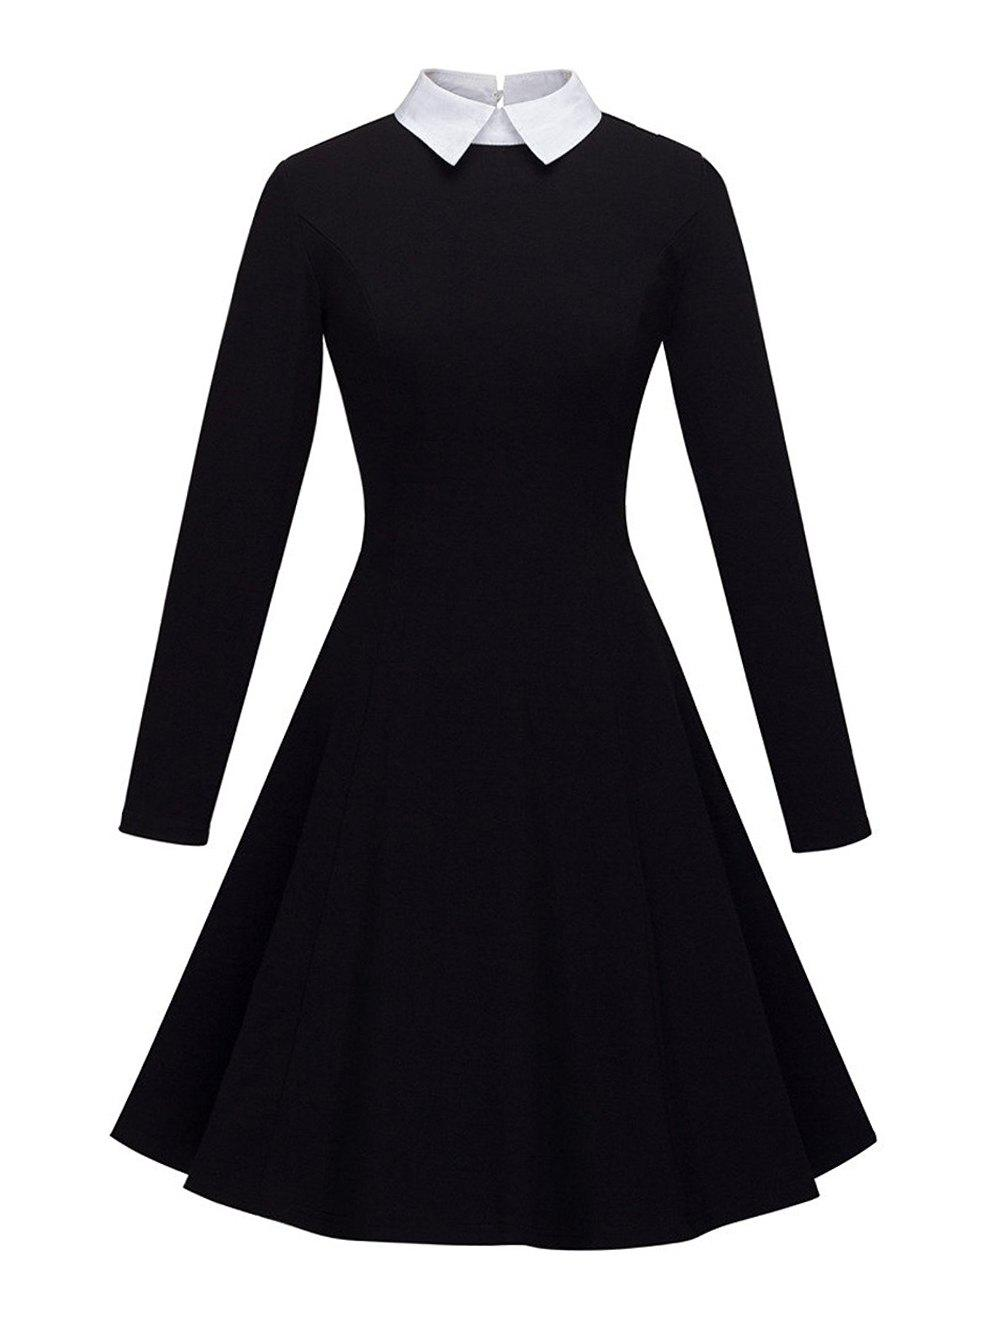 529a140ea13 32% OFF  Women s Peter Pan Lapel Collar Long Sleeve Fit And Flare ...